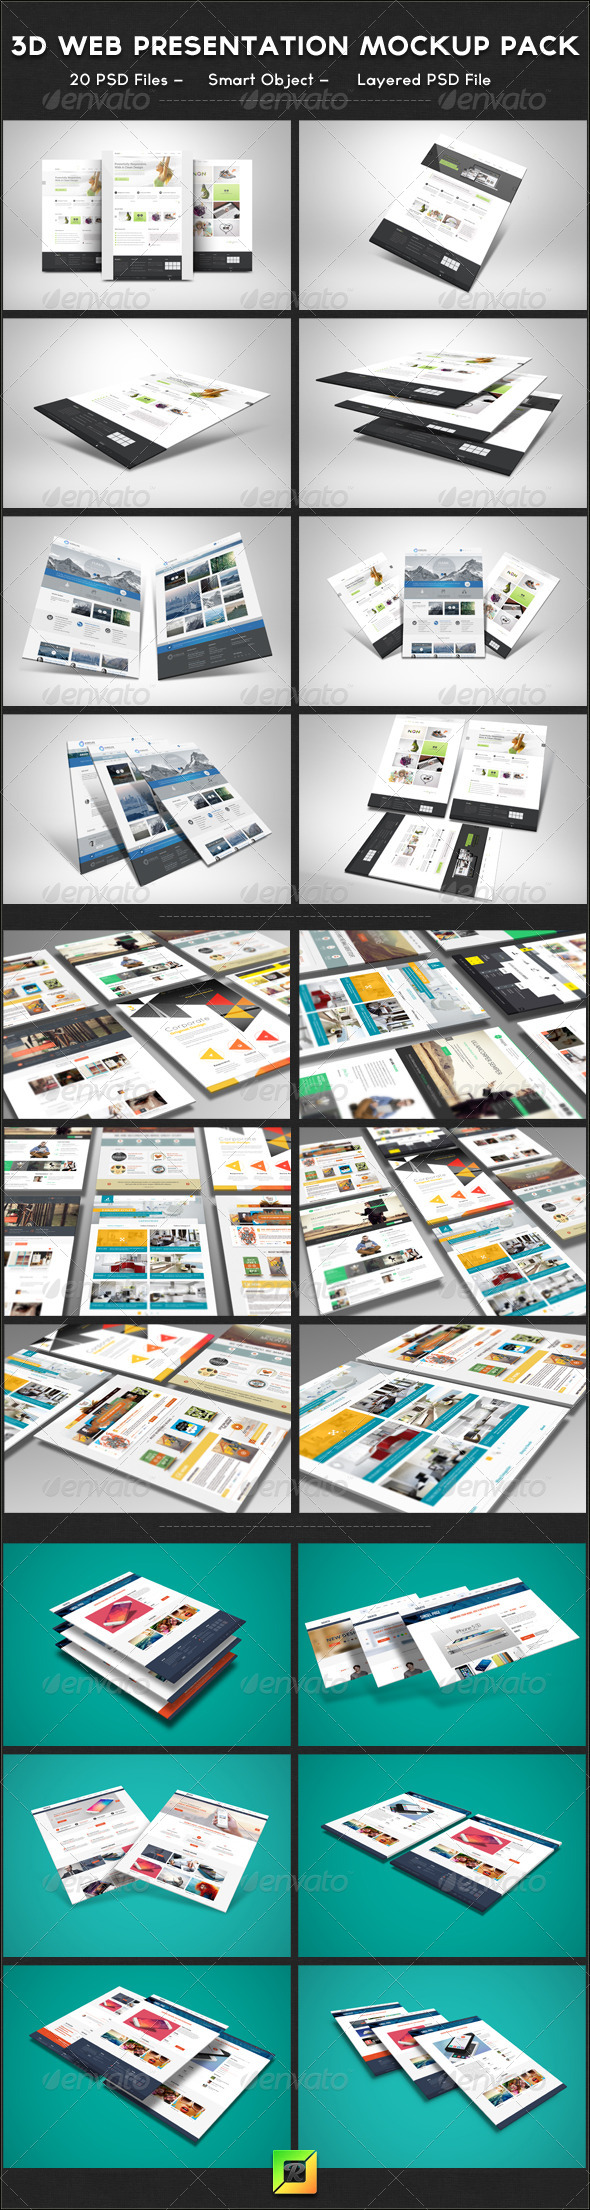 GraphicRiver 3D Web Presentation Mockup Bundle 6216722